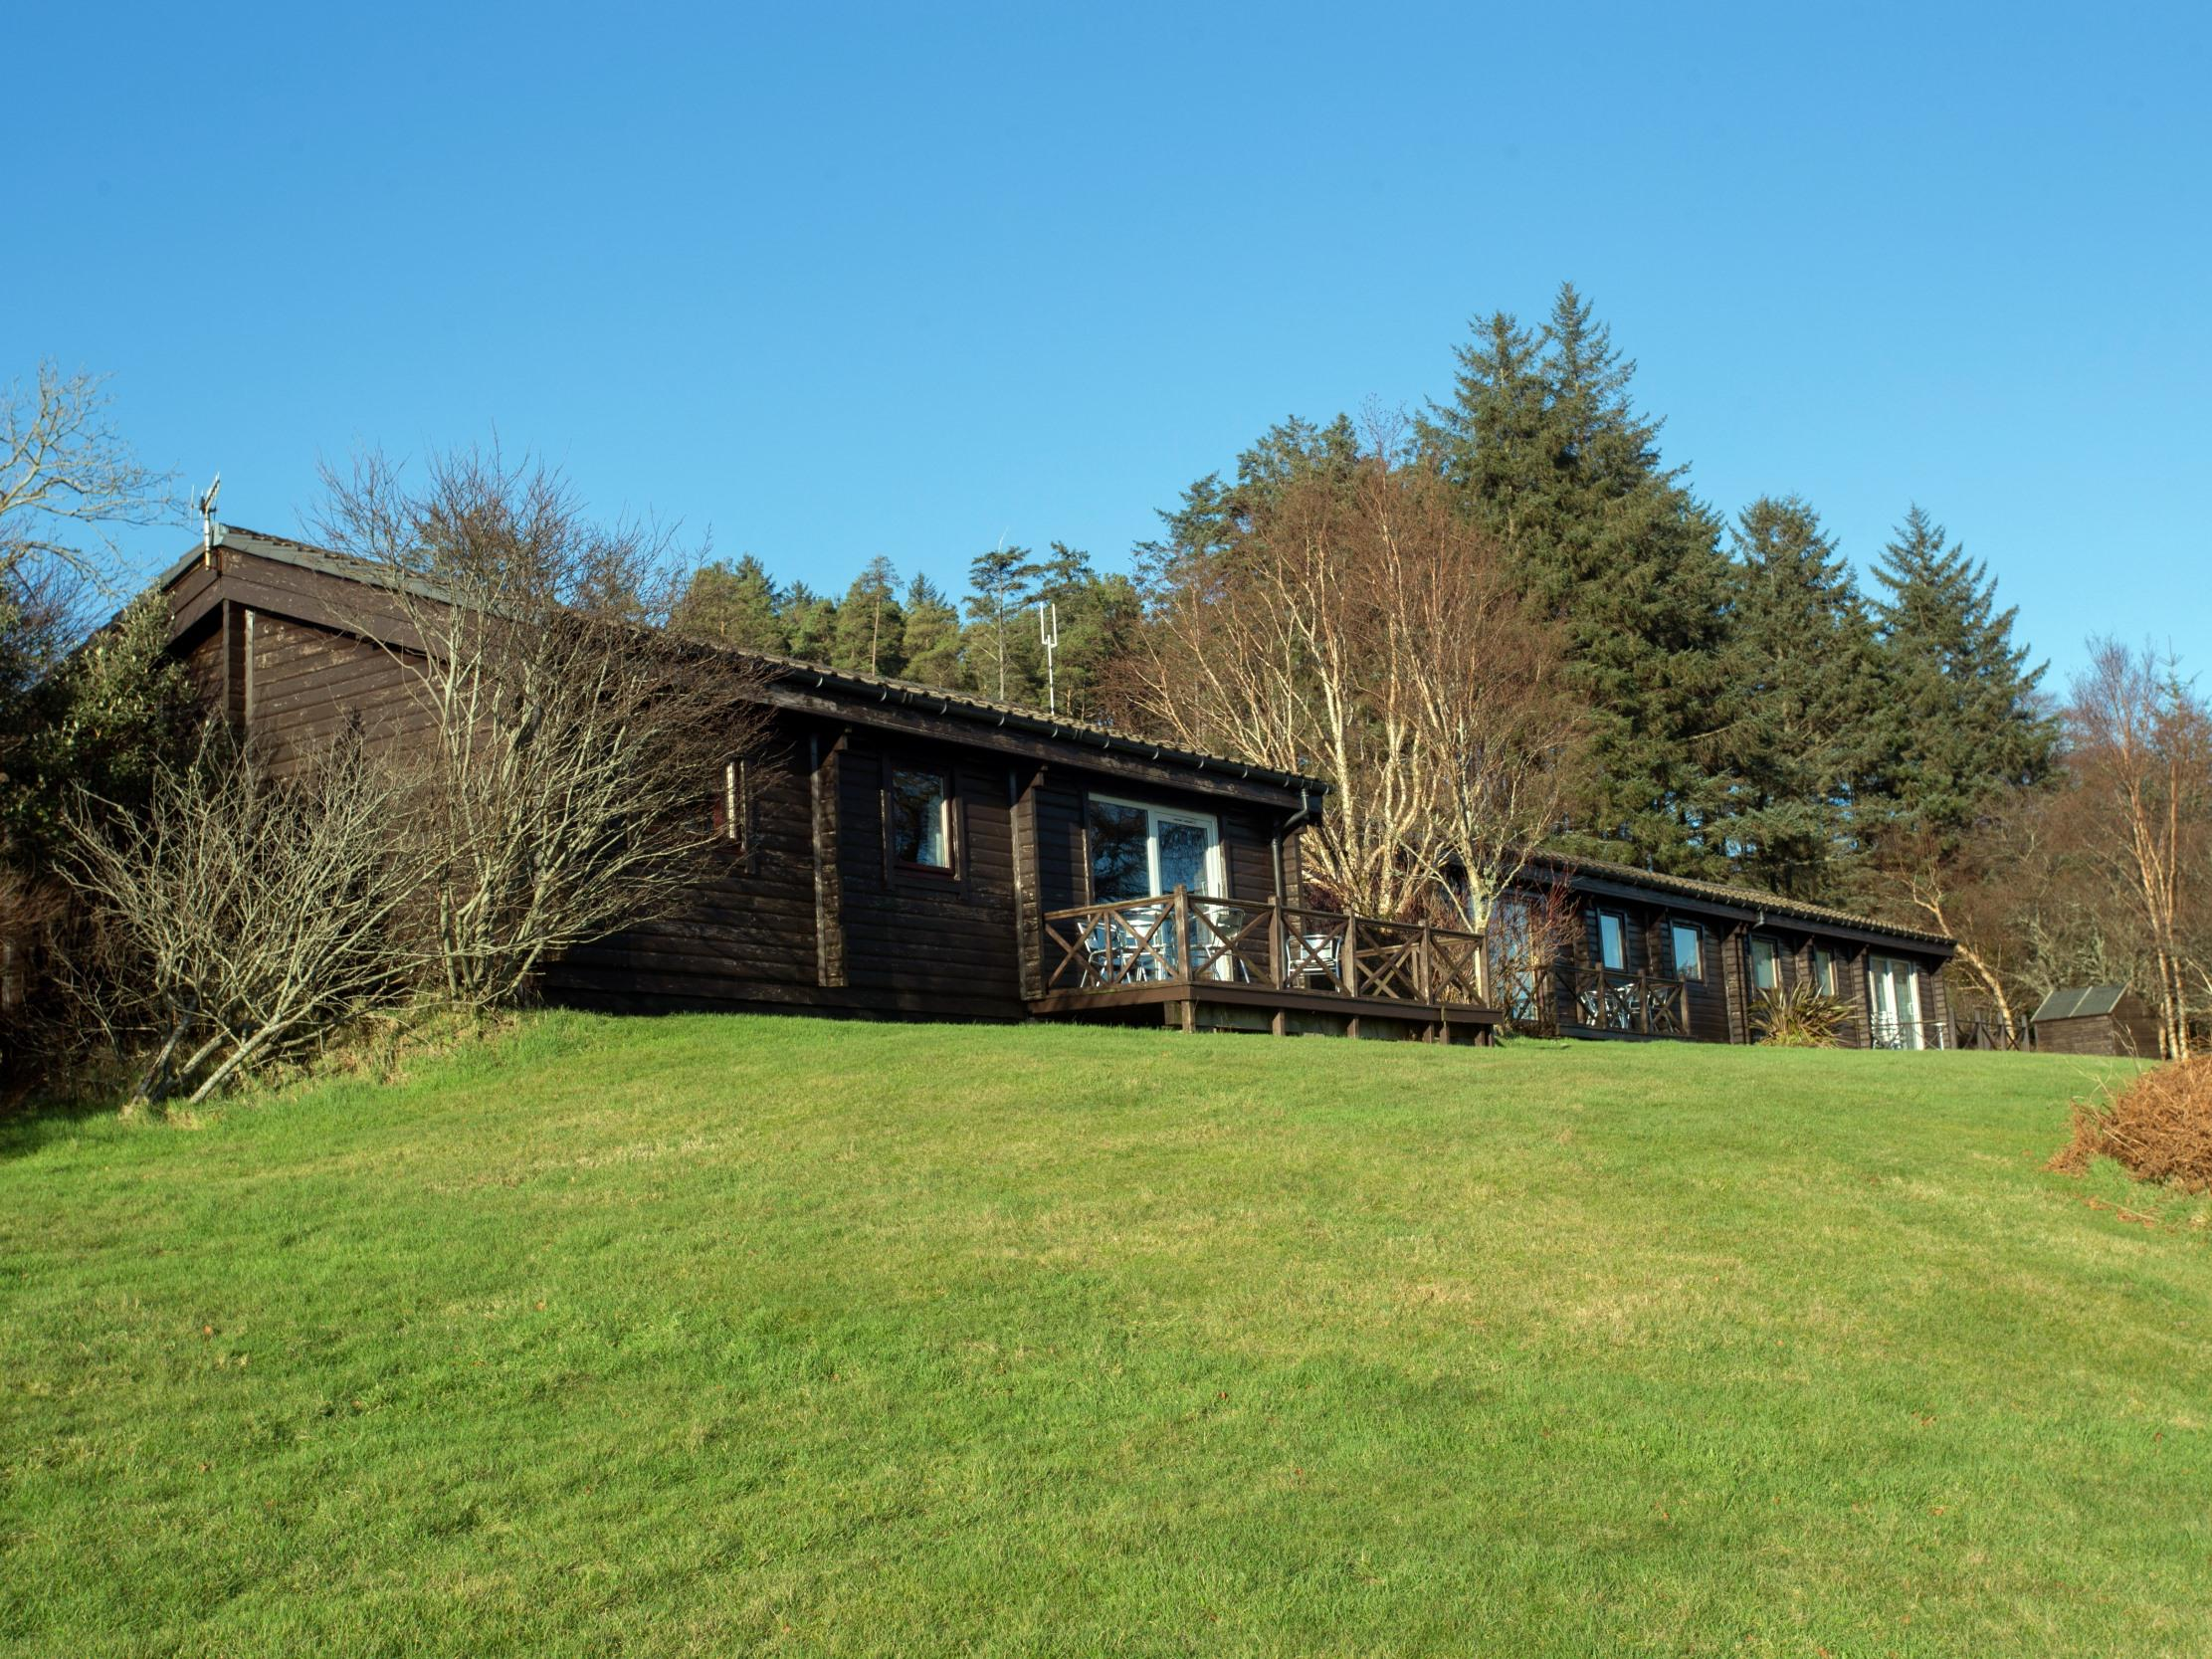 Glengarry Lodge (ramped access)